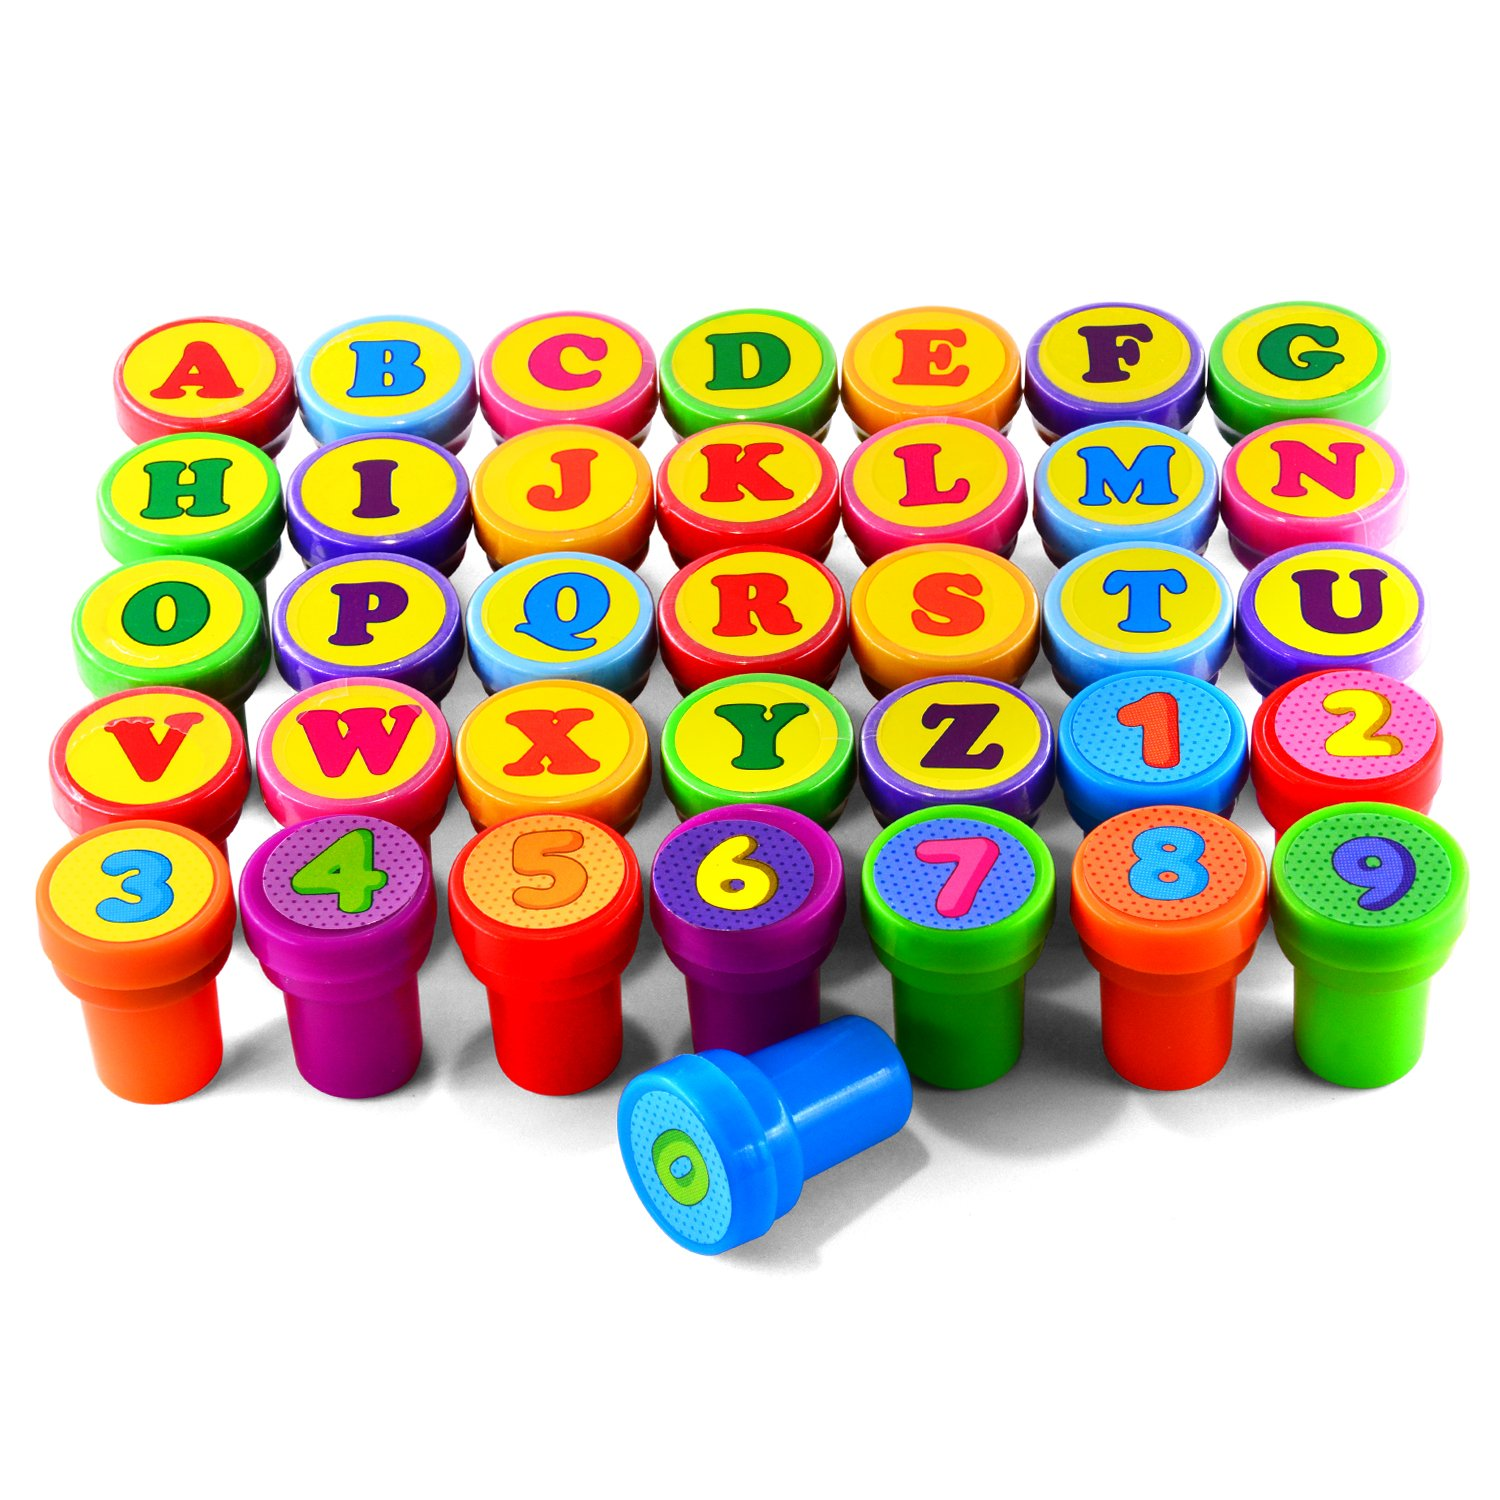 Hawksbill Colorful Self Inking Stamps Plastic Alphabet and Number Stamps Set for Children Party Favor, School Prizes, Birthday Gift, Learn Props